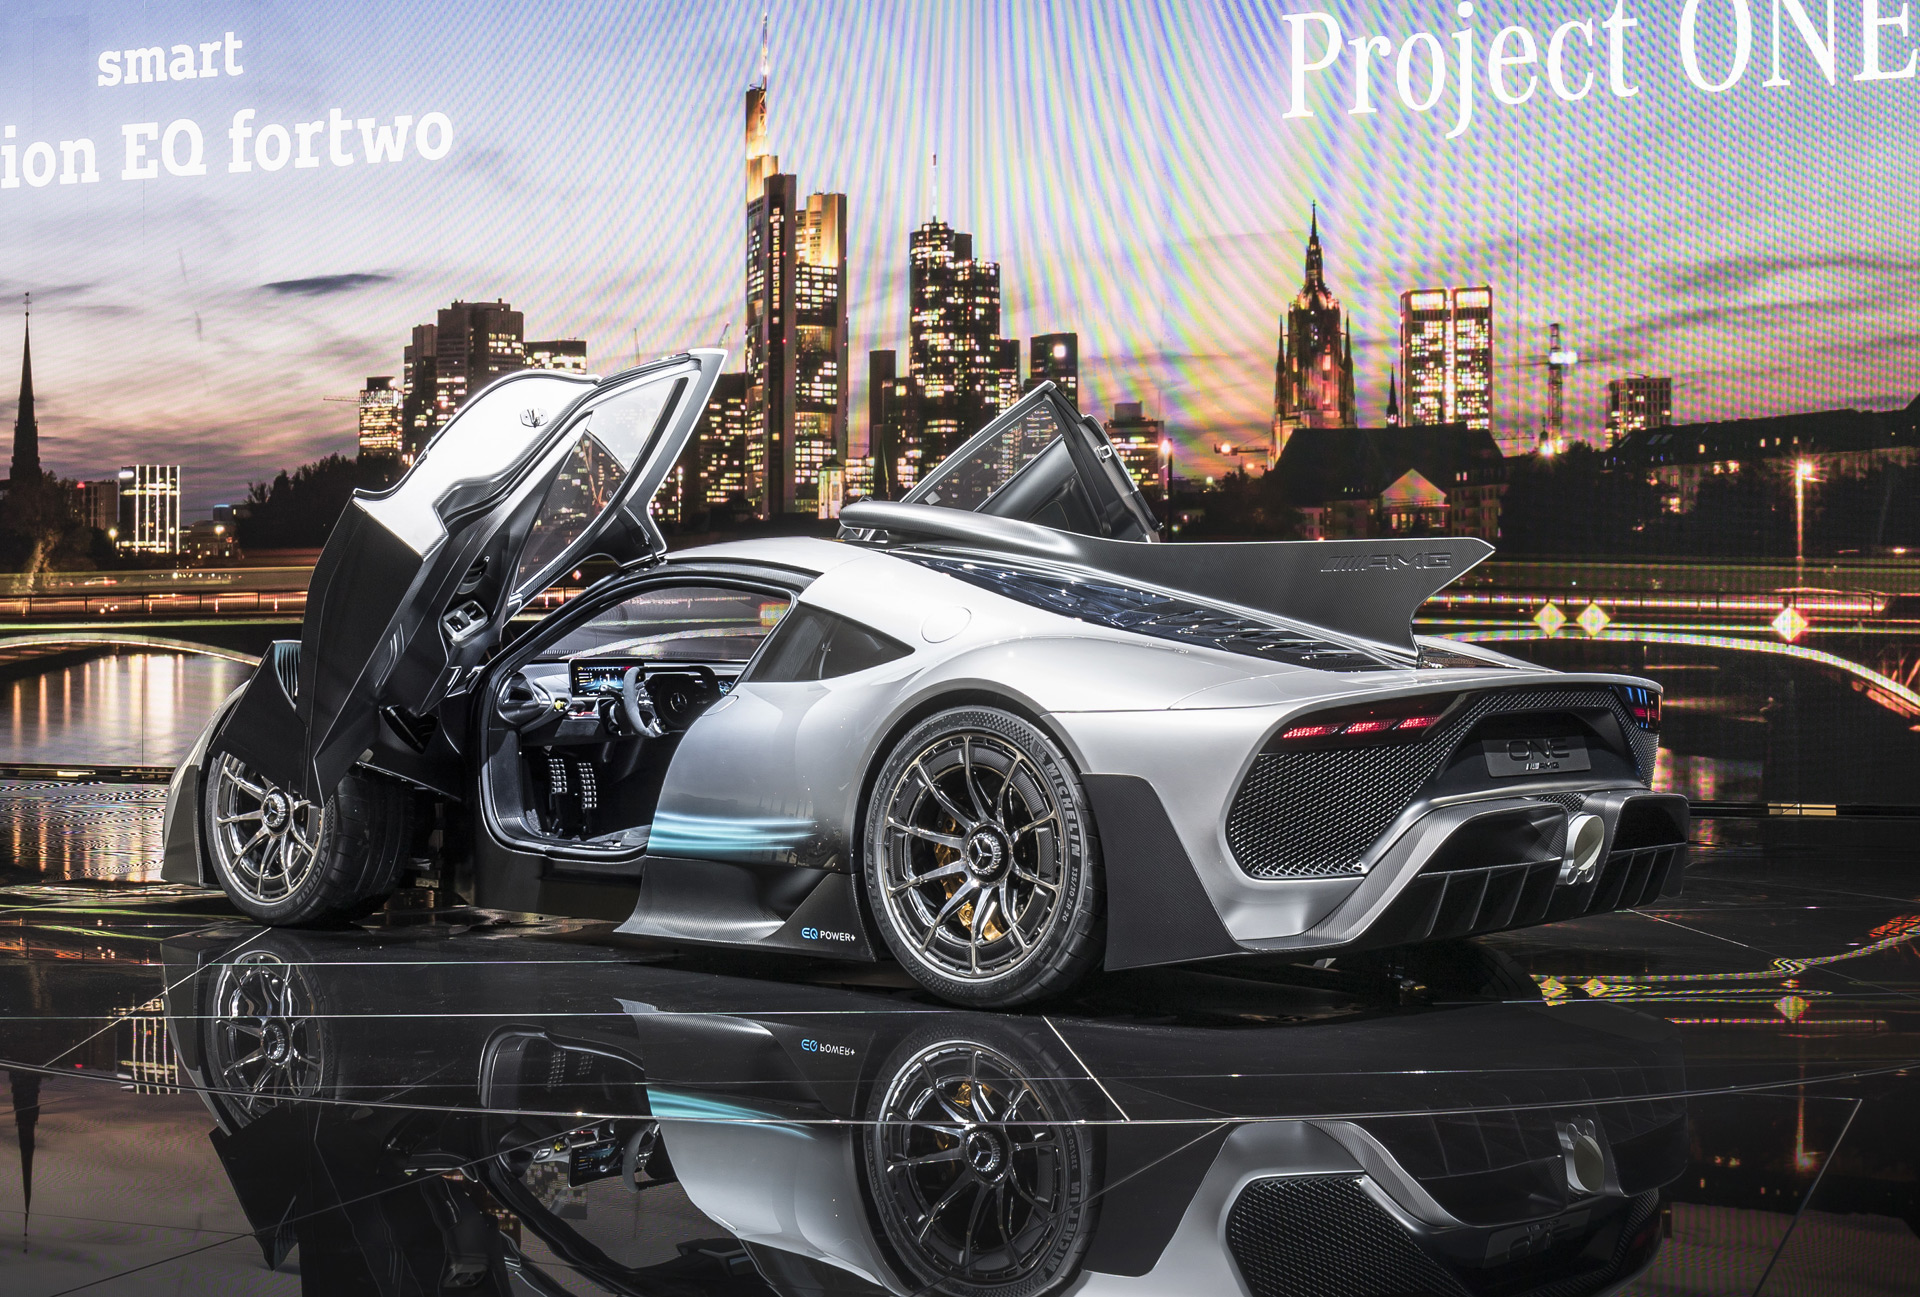 bmw i vision dynamics mercedes amg project one land rover discovery svx car news headlines. Black Bedroom Furniture Sets. Home Design Ideas